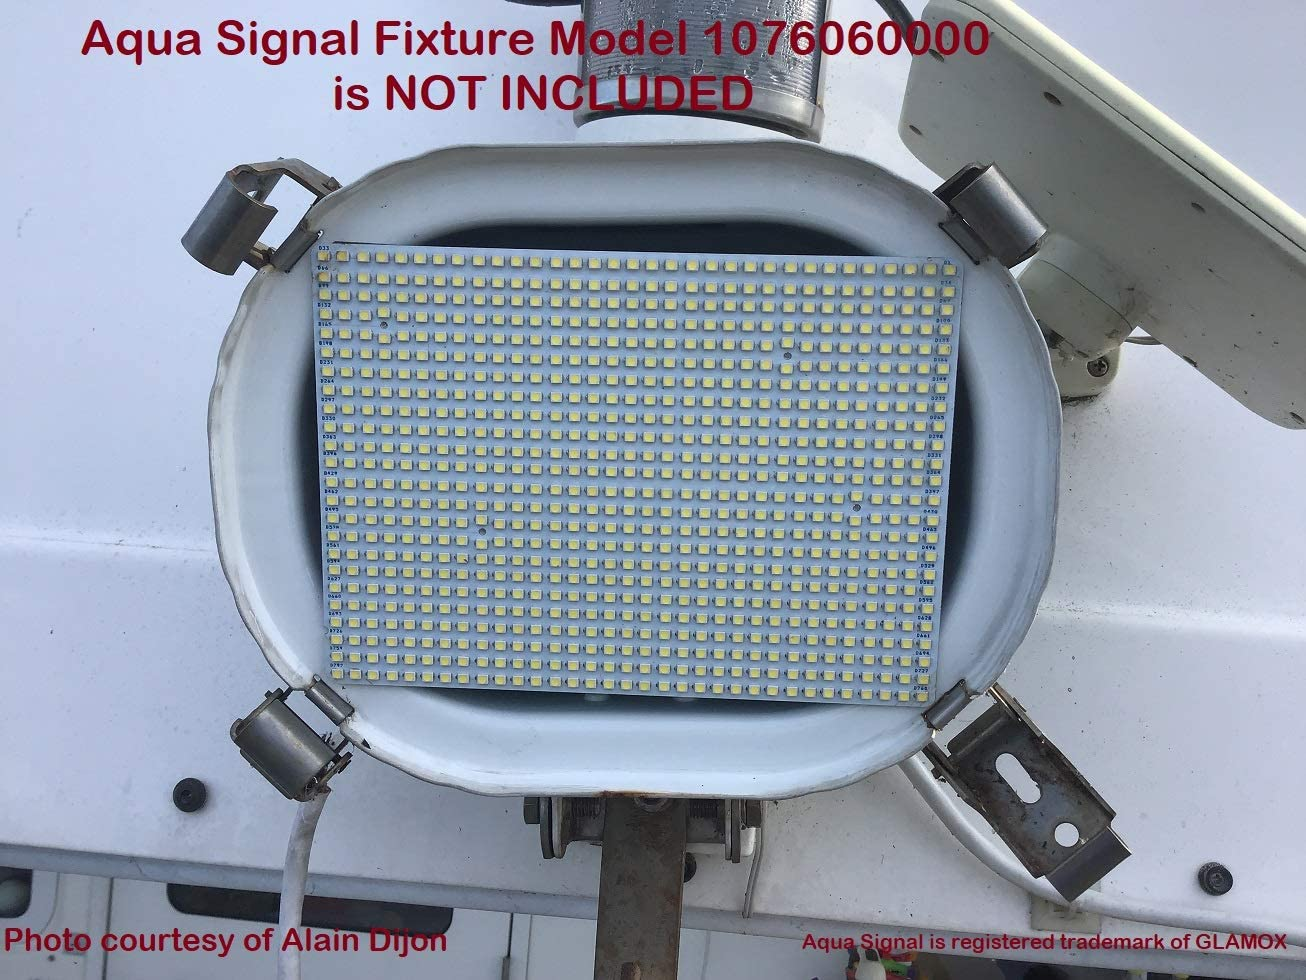 SOLARA-USA LED Panel for Aqua sold out Gifts FLOODLIGHT Fixture Signal Halogen